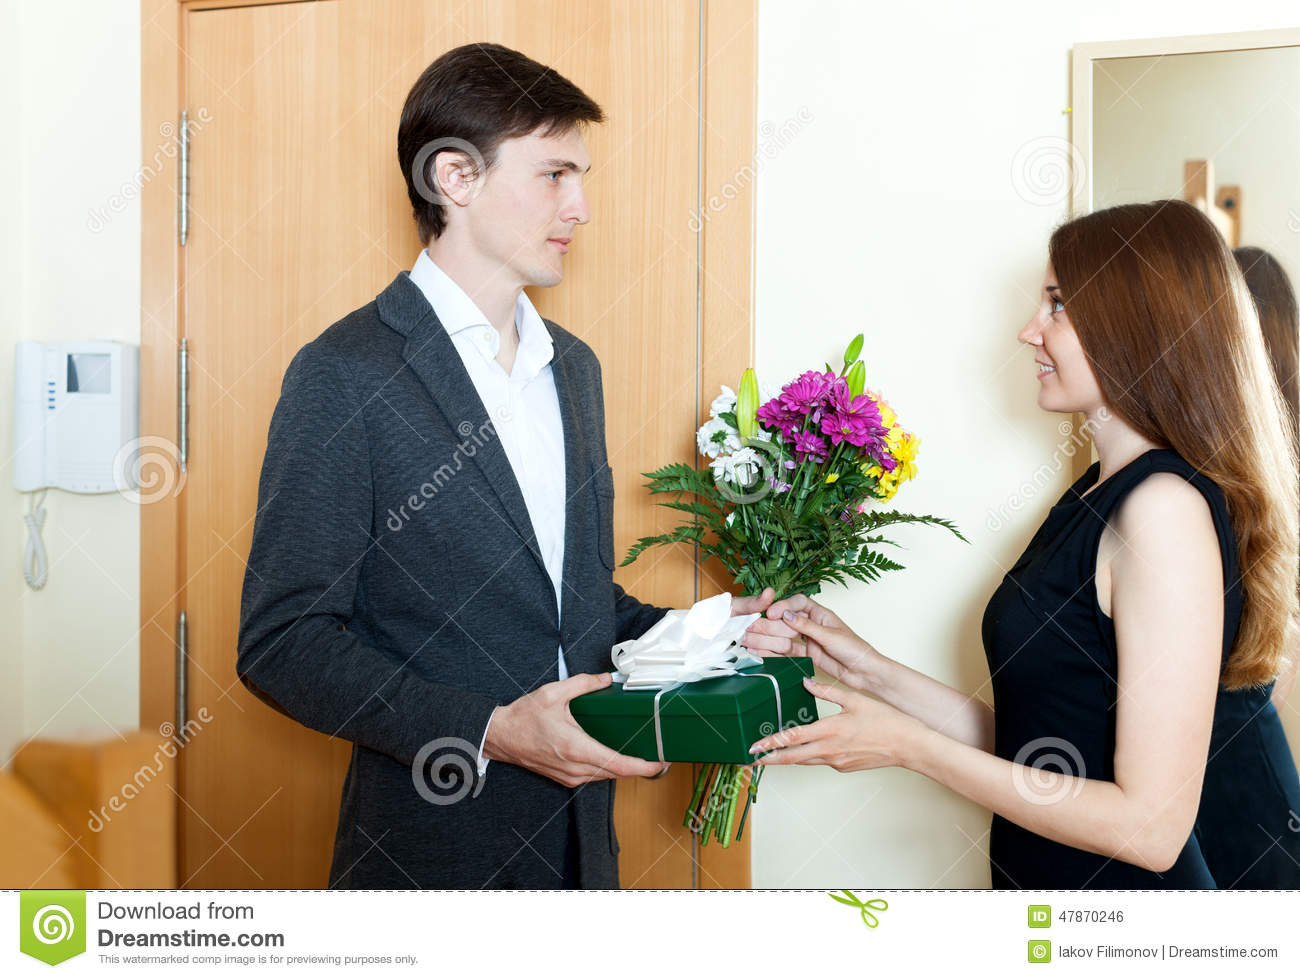 Gifts For Young Men: Young Man Giving Gifts To Girl Stock Photo